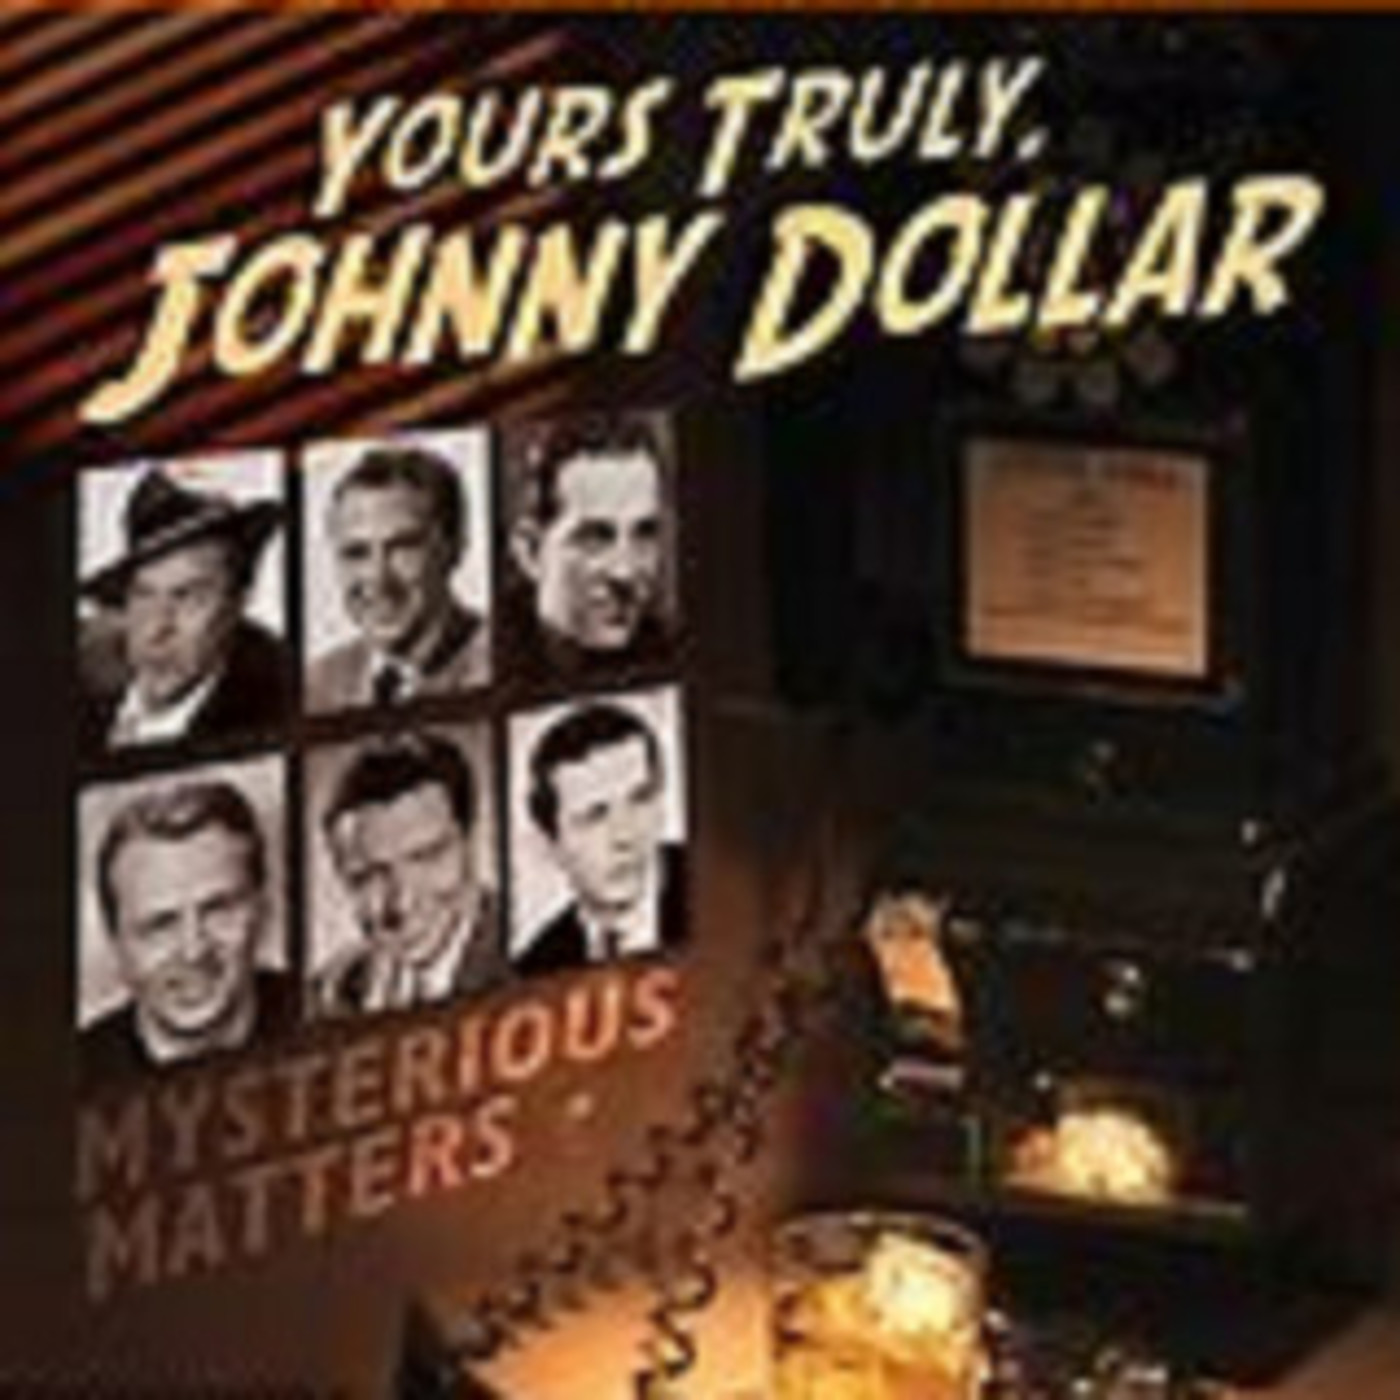 Yours Truly, Johnny Dollar - 081262, episode 804 - The Oldest Gag Matter